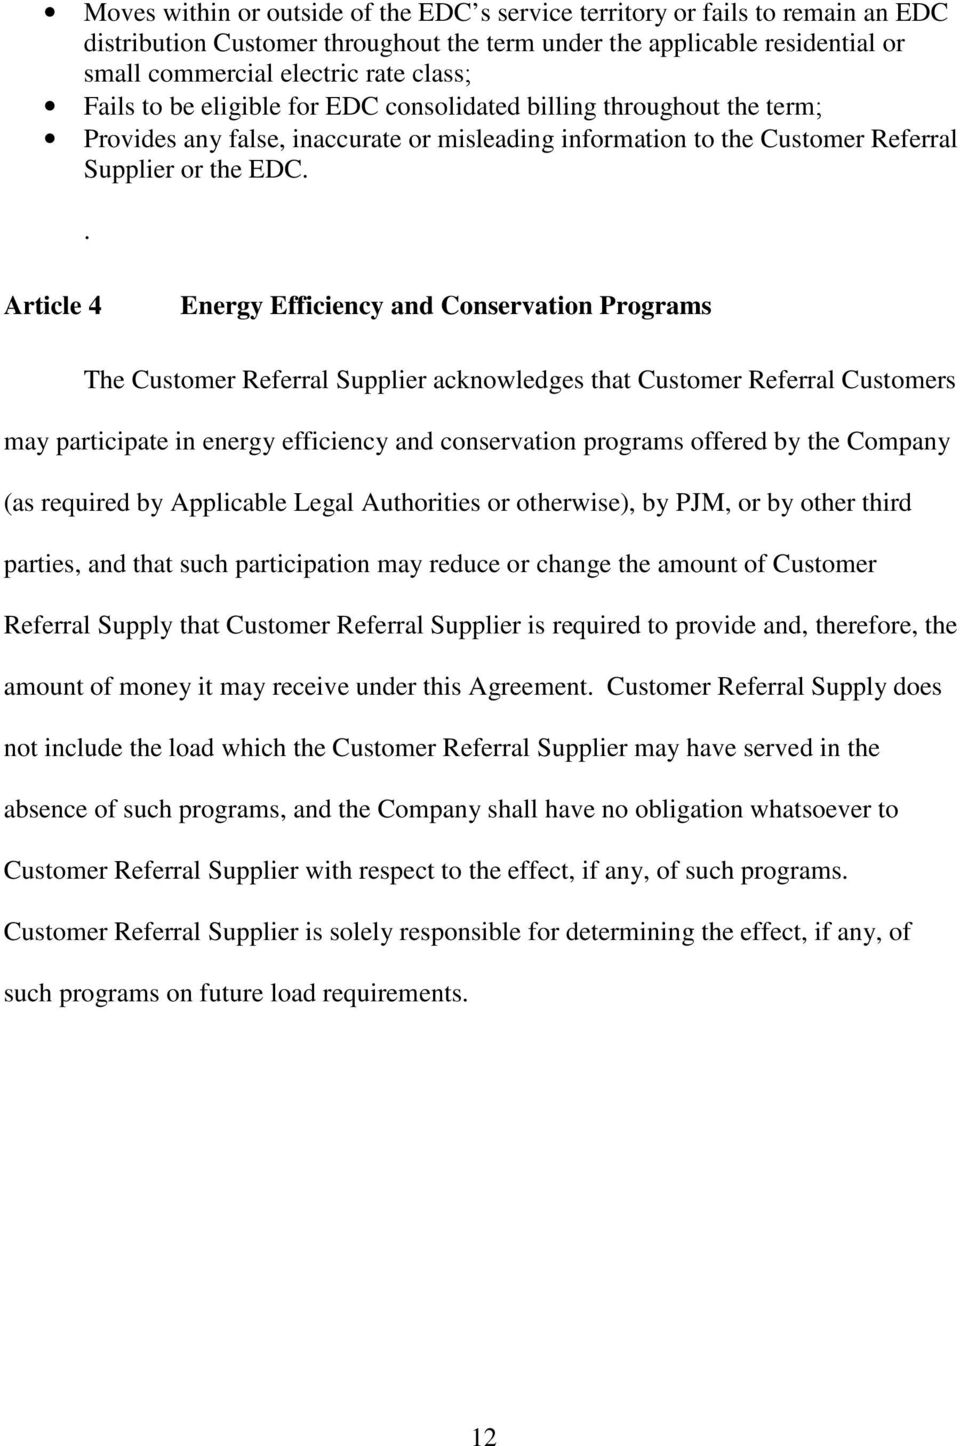 . Article 4 Energy Efficiency and Conservation Programs The Customer Referral Supplier acknowledges that Customer Referral Customers may participate in energy efficiency and conservation programs